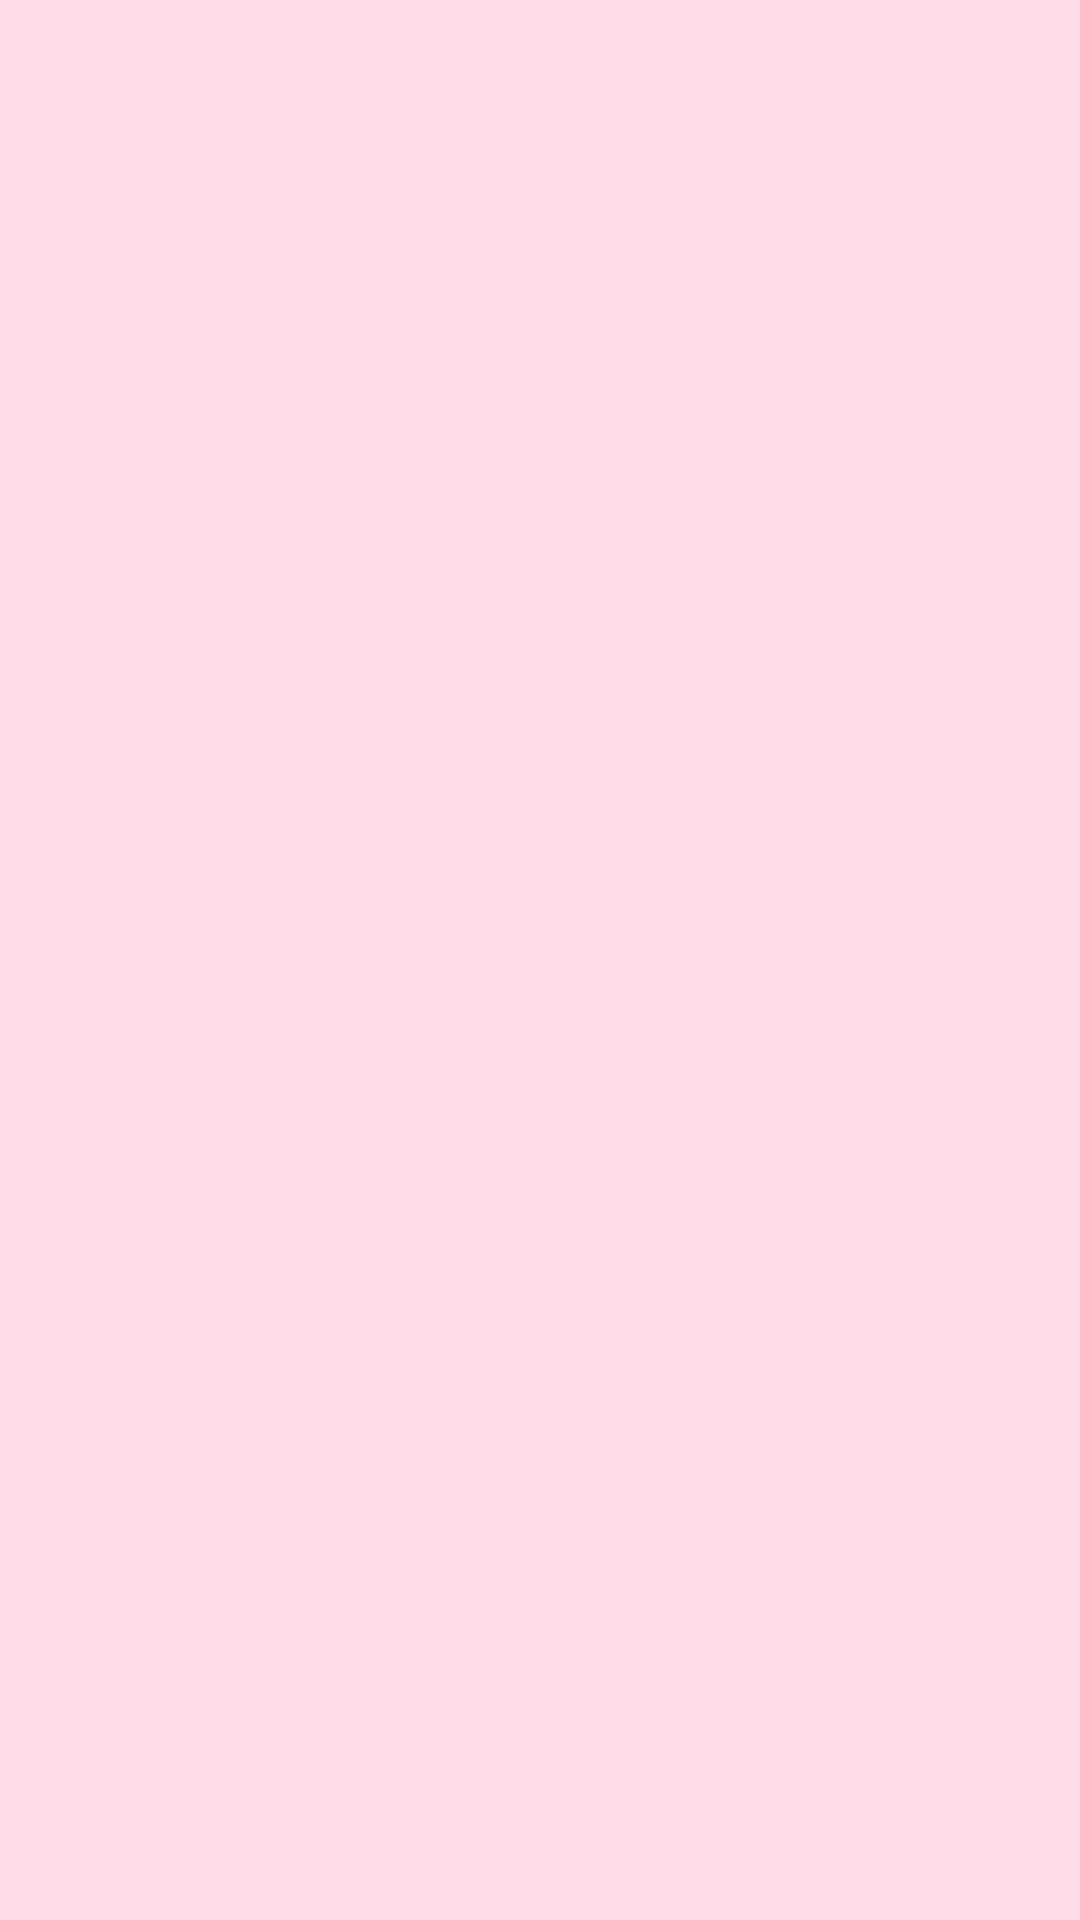 plain baby pink wallpaper | iphone wallpapers | pinterest | pink